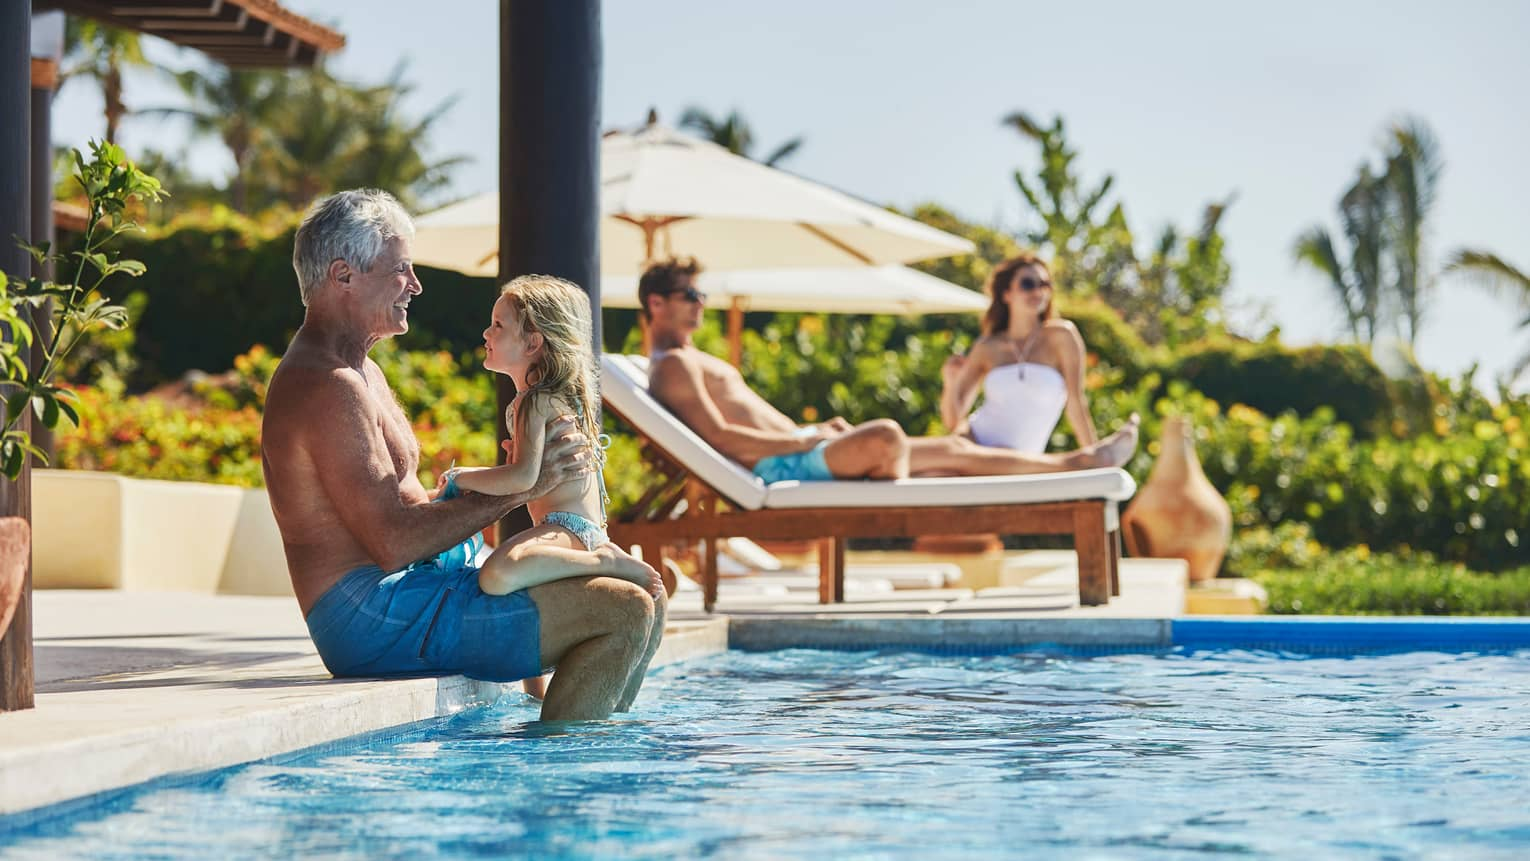 Grandfather holds young girl on edge of outdoor swimming pool, parents lounge on chairs